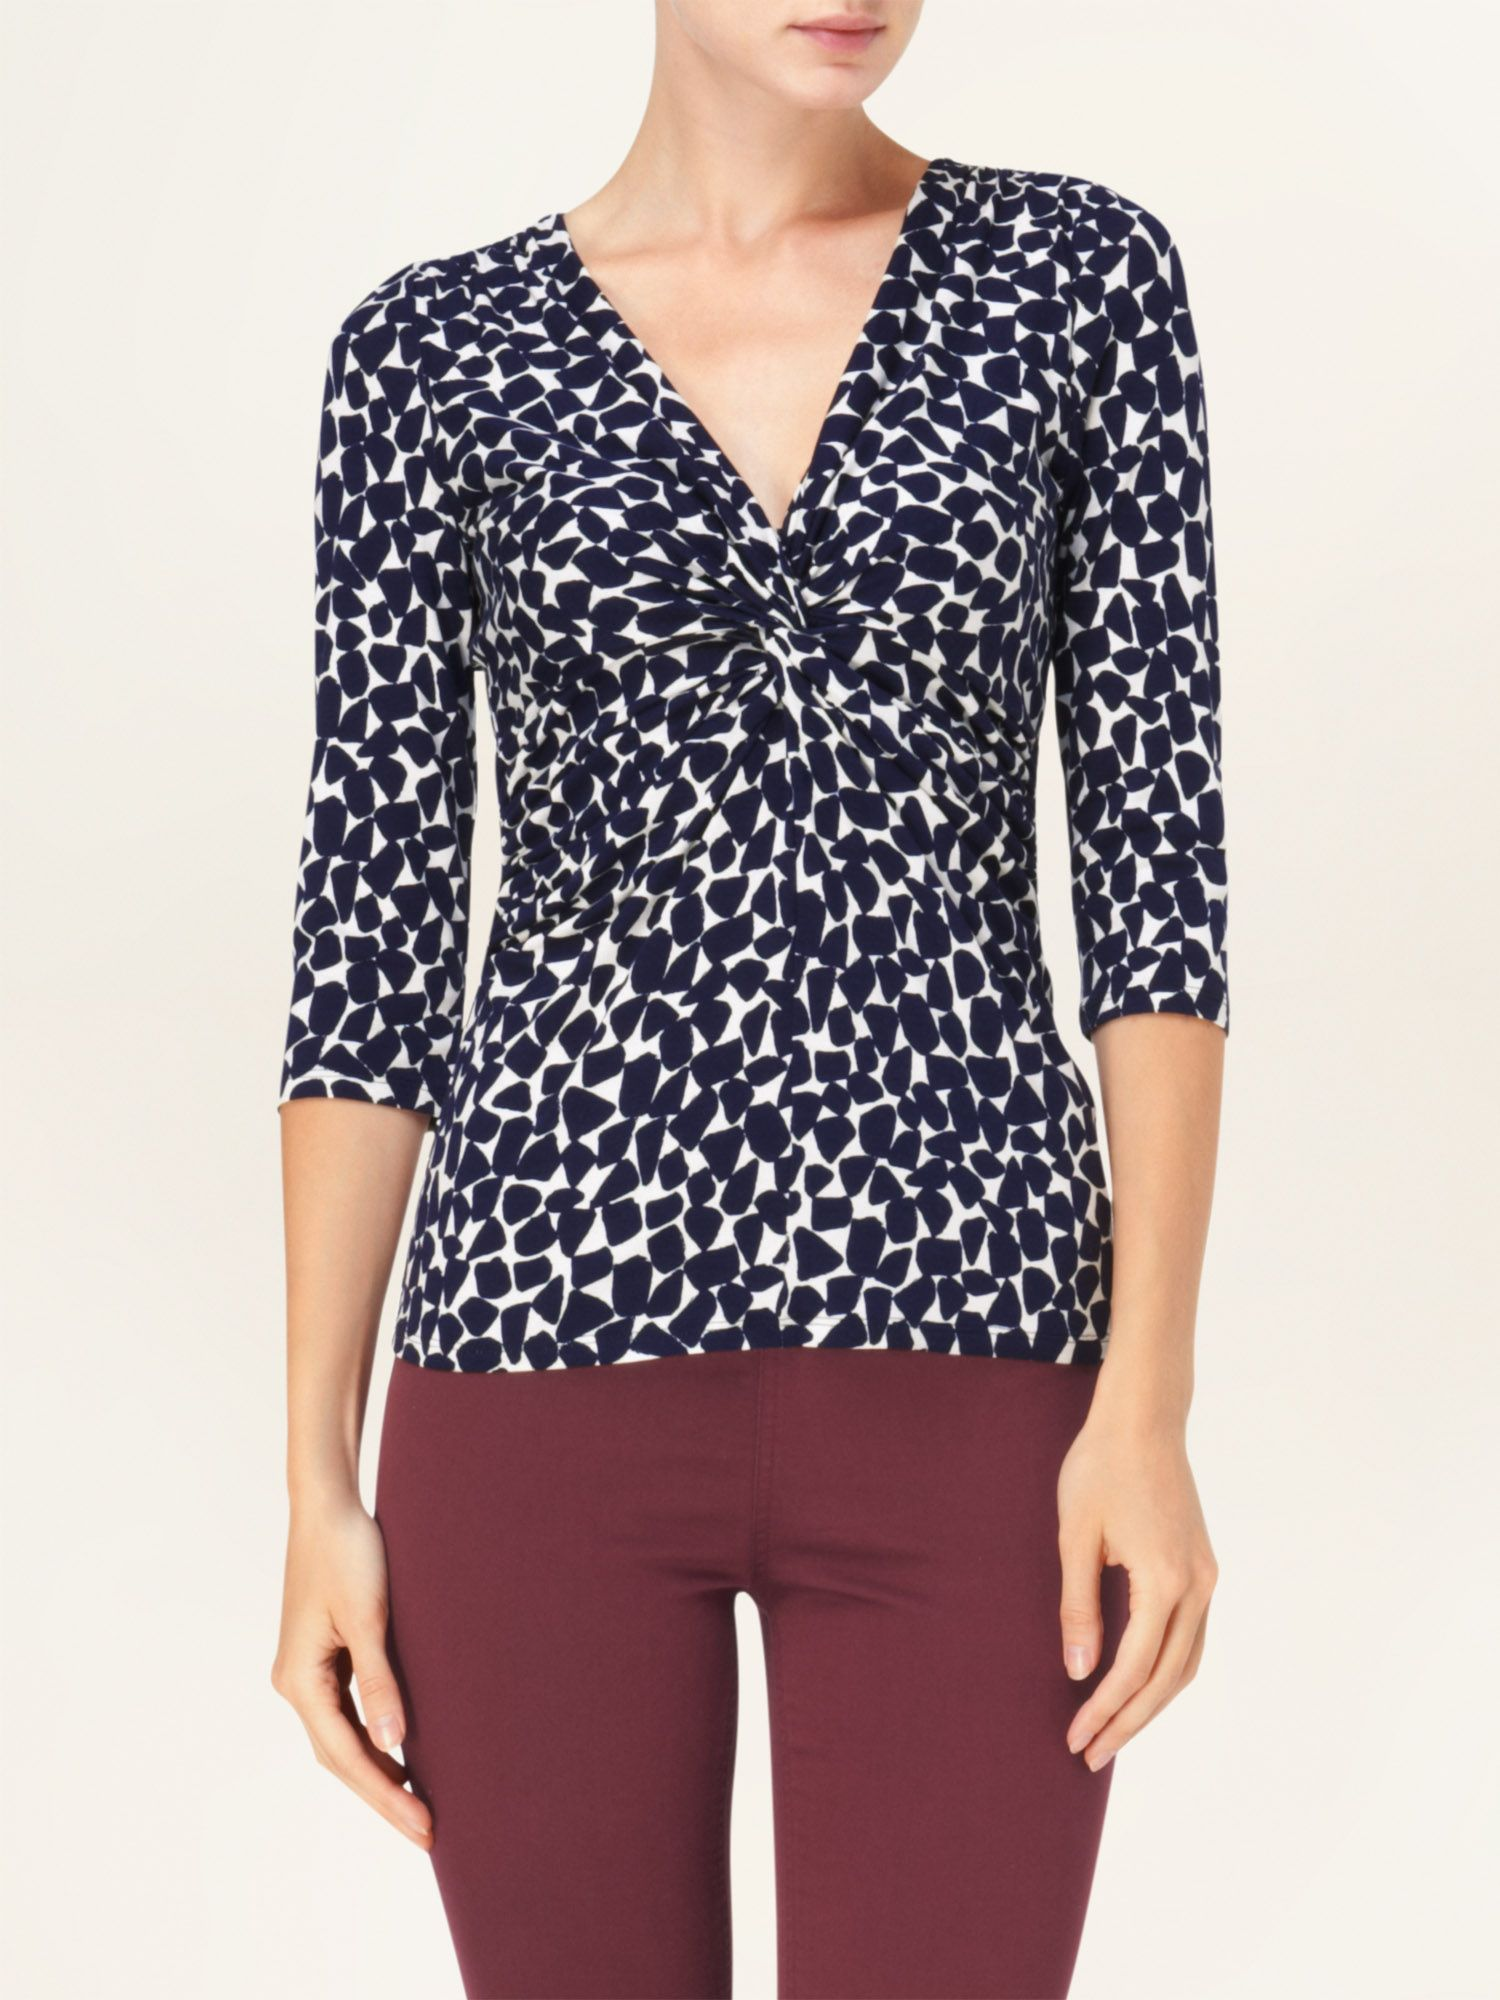 Sara pebble print top